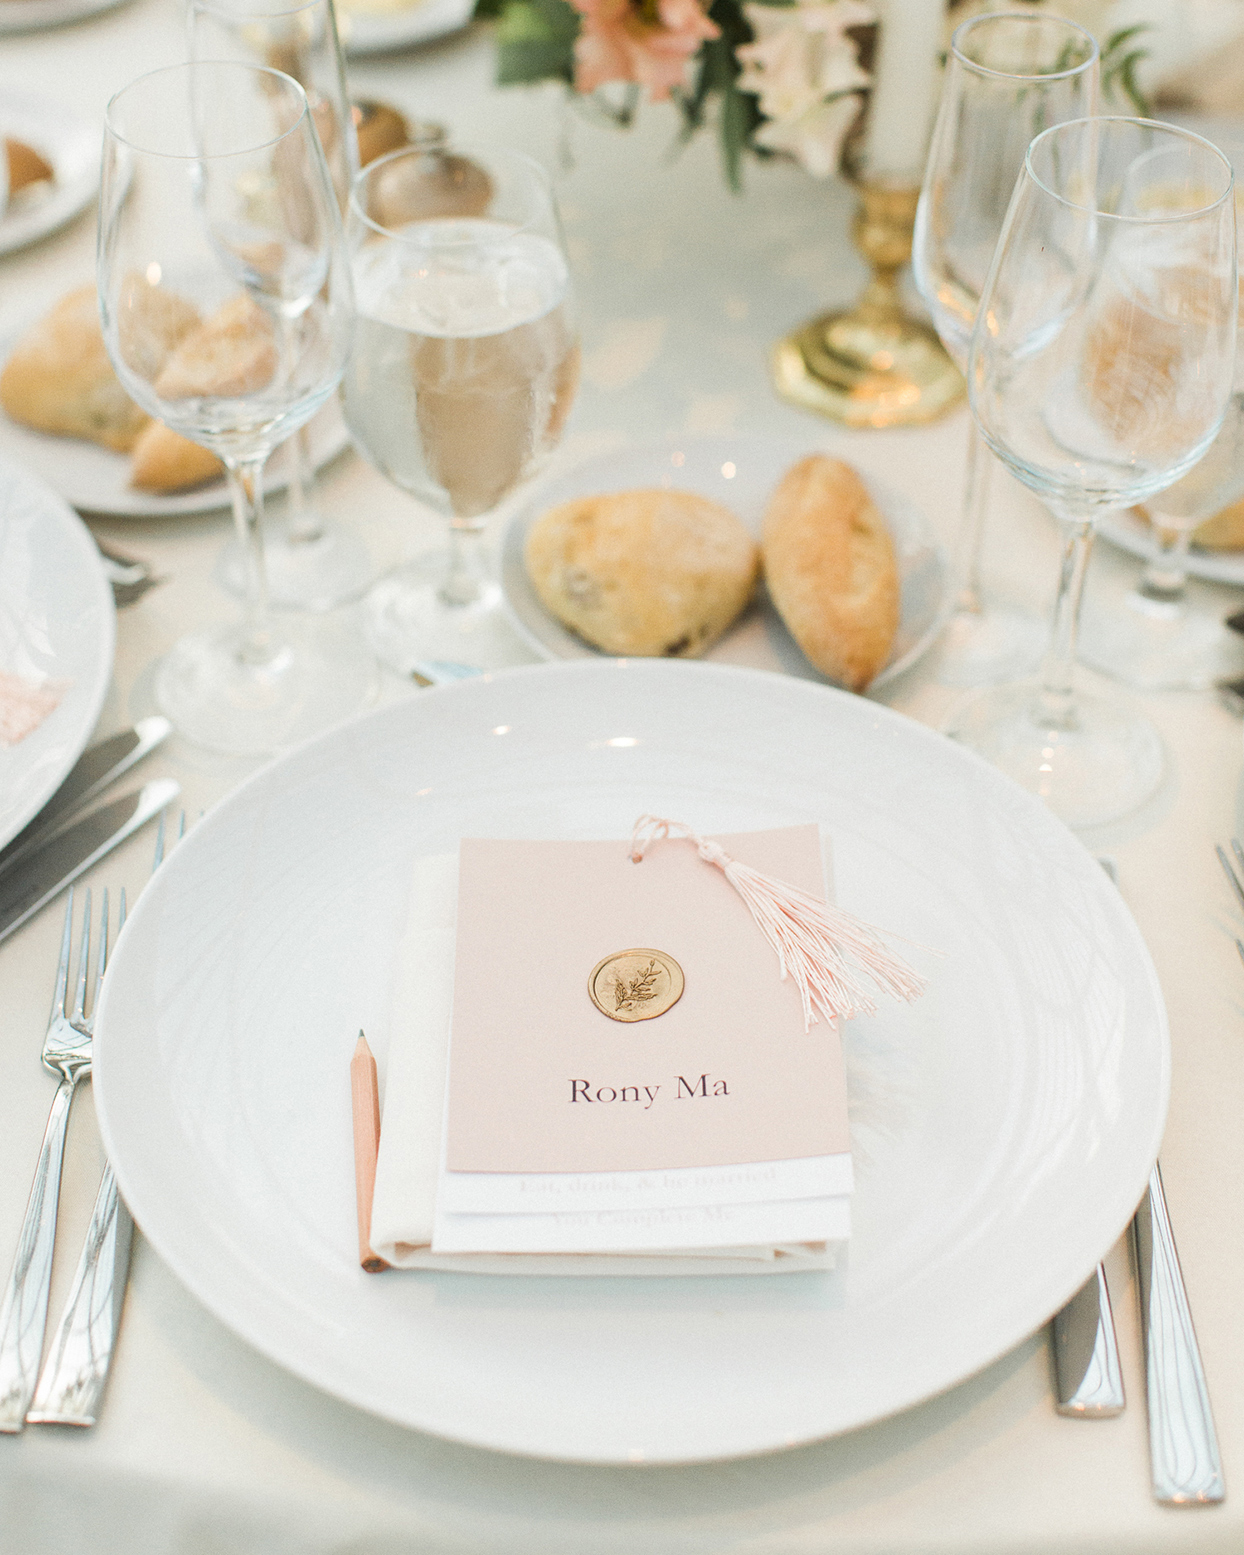 grace john wedding place setting with pastel pink place card on plate